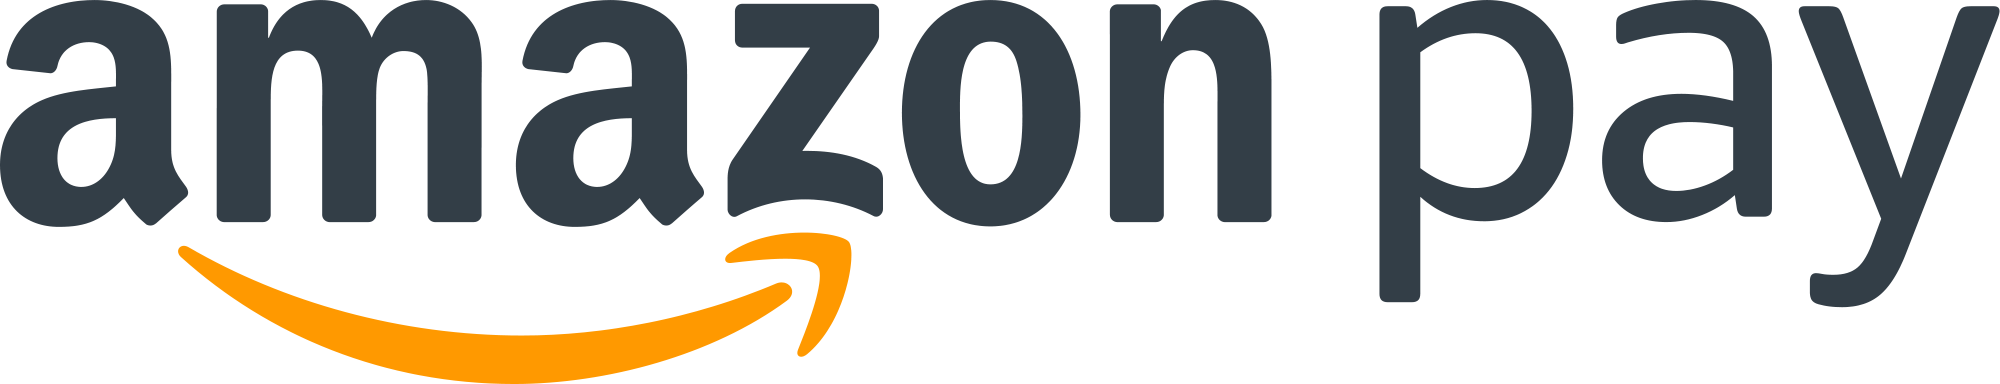 Bezahle Dein ONE PC Systeme bequem per Amazon pay